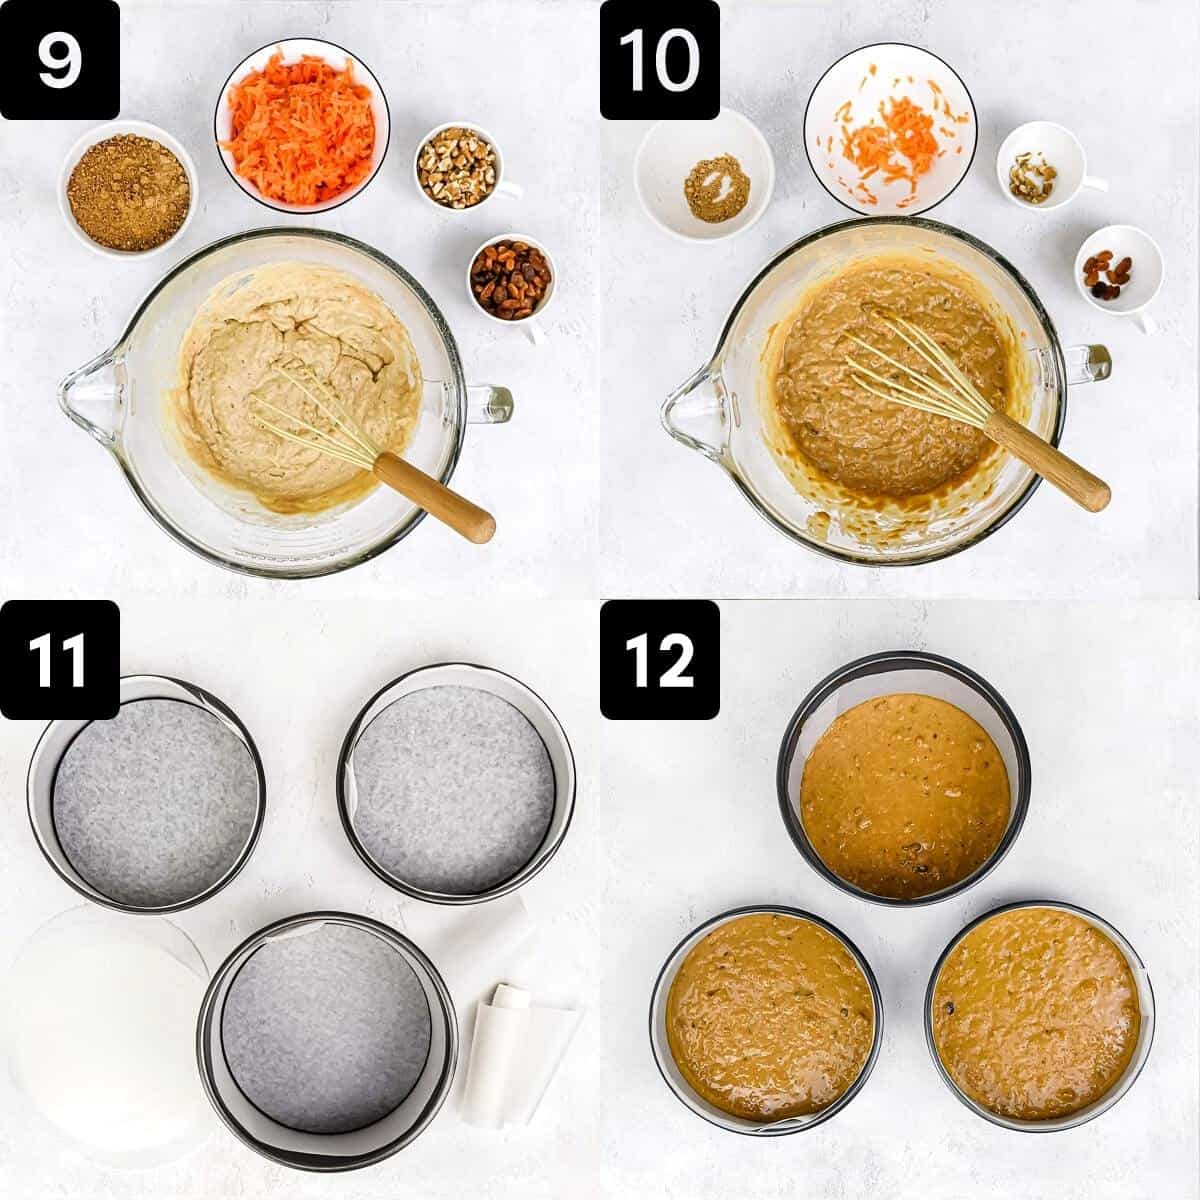 Step-by-step directions to make the batter for the carrot cake